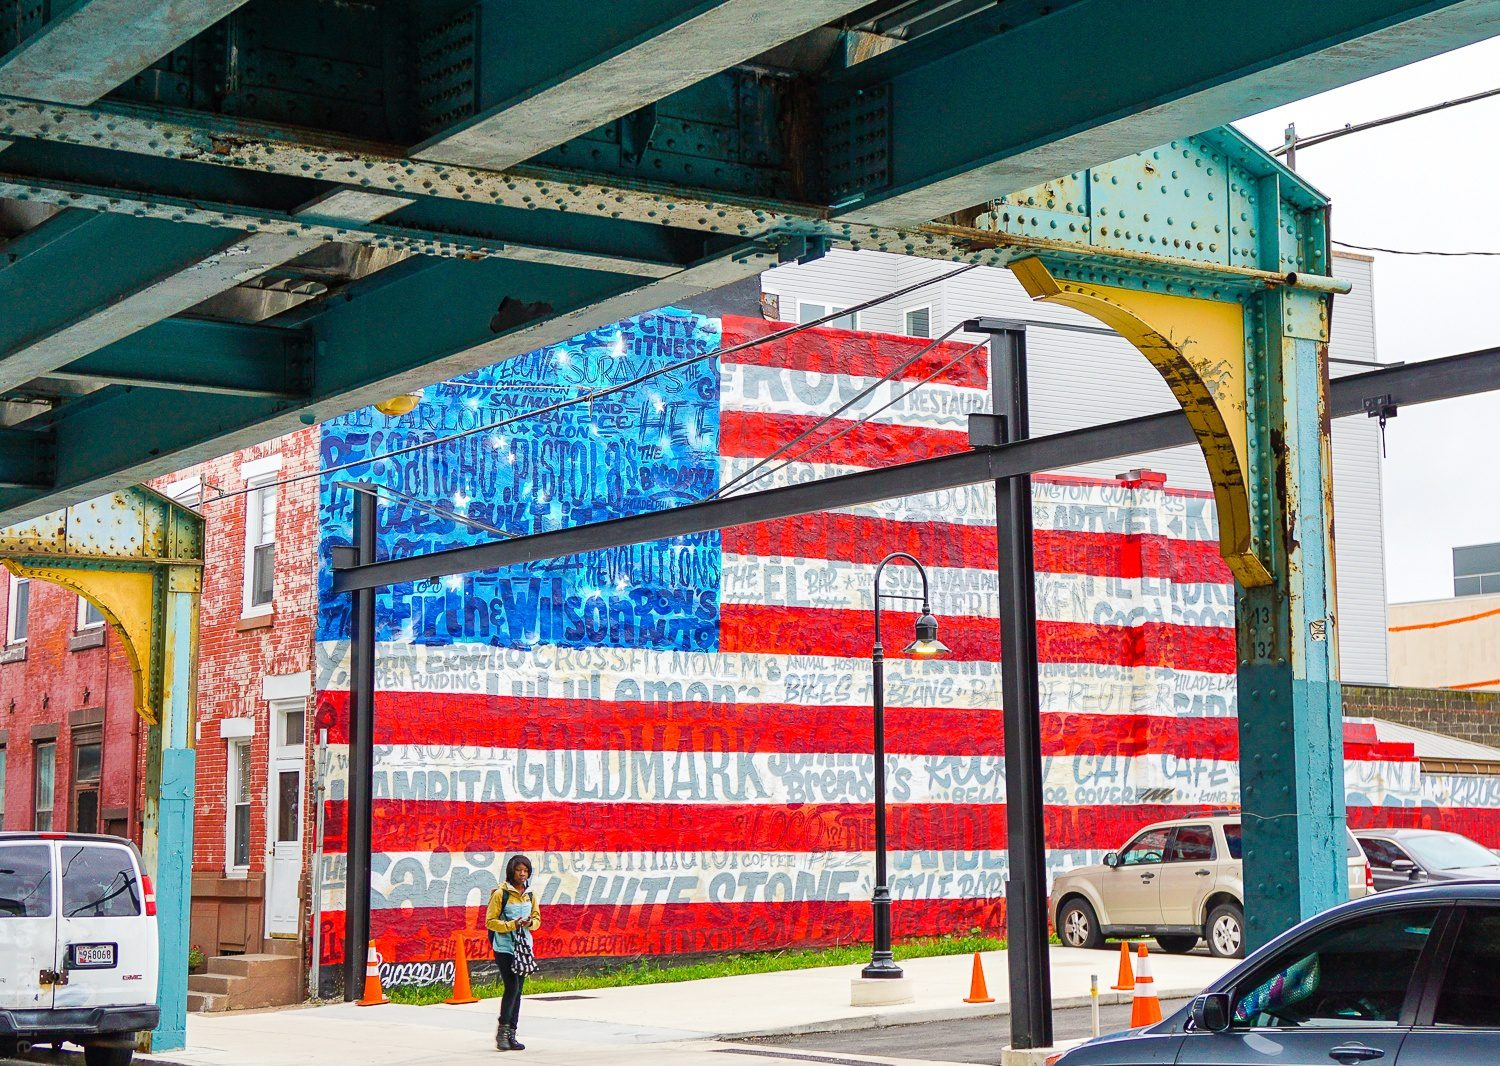 A flag mural, emblazoned with the names of local stores.